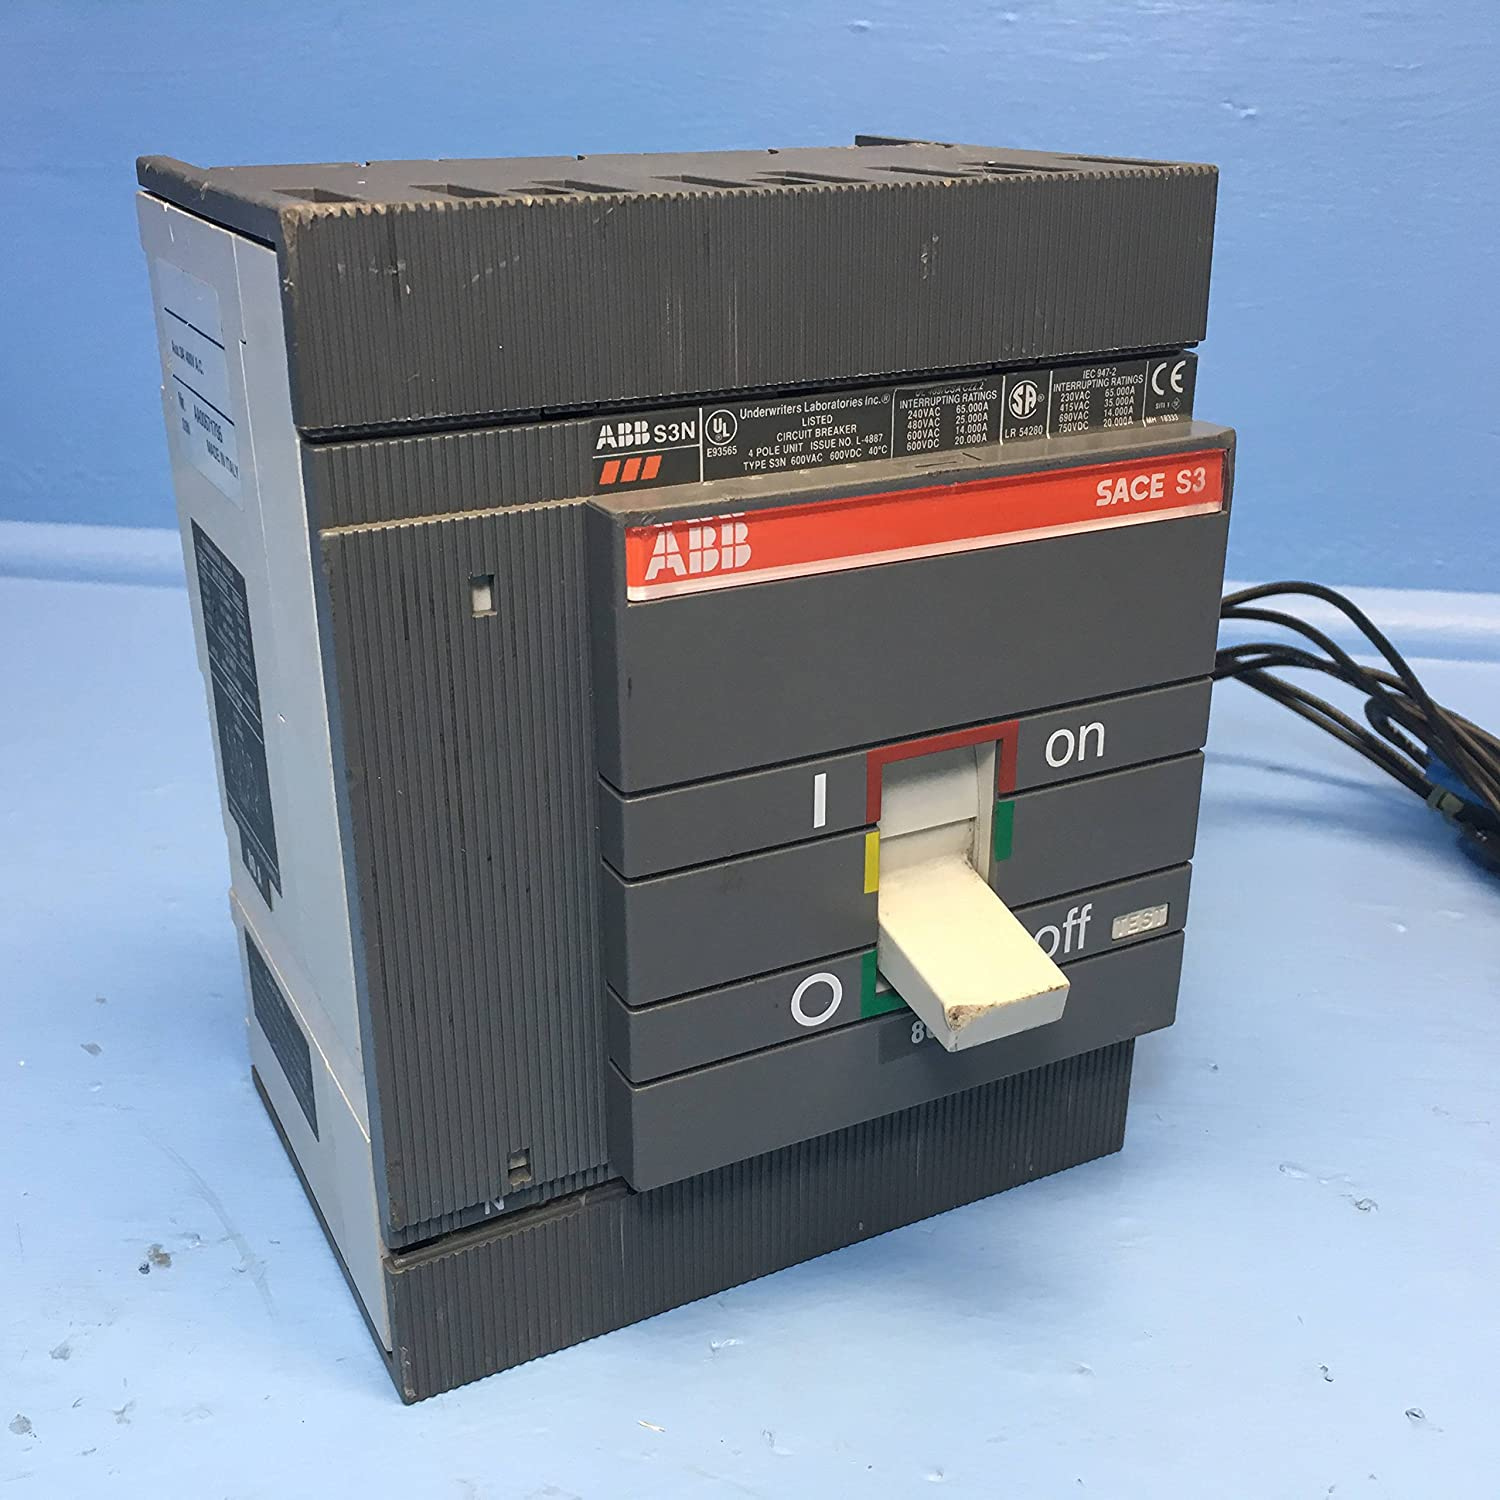 Abb Sace S3 80a Circuit Breaker 4 Pole W Aux 600v Type S3n 80 Amp Wiring Diagram Power Industrial Scientific